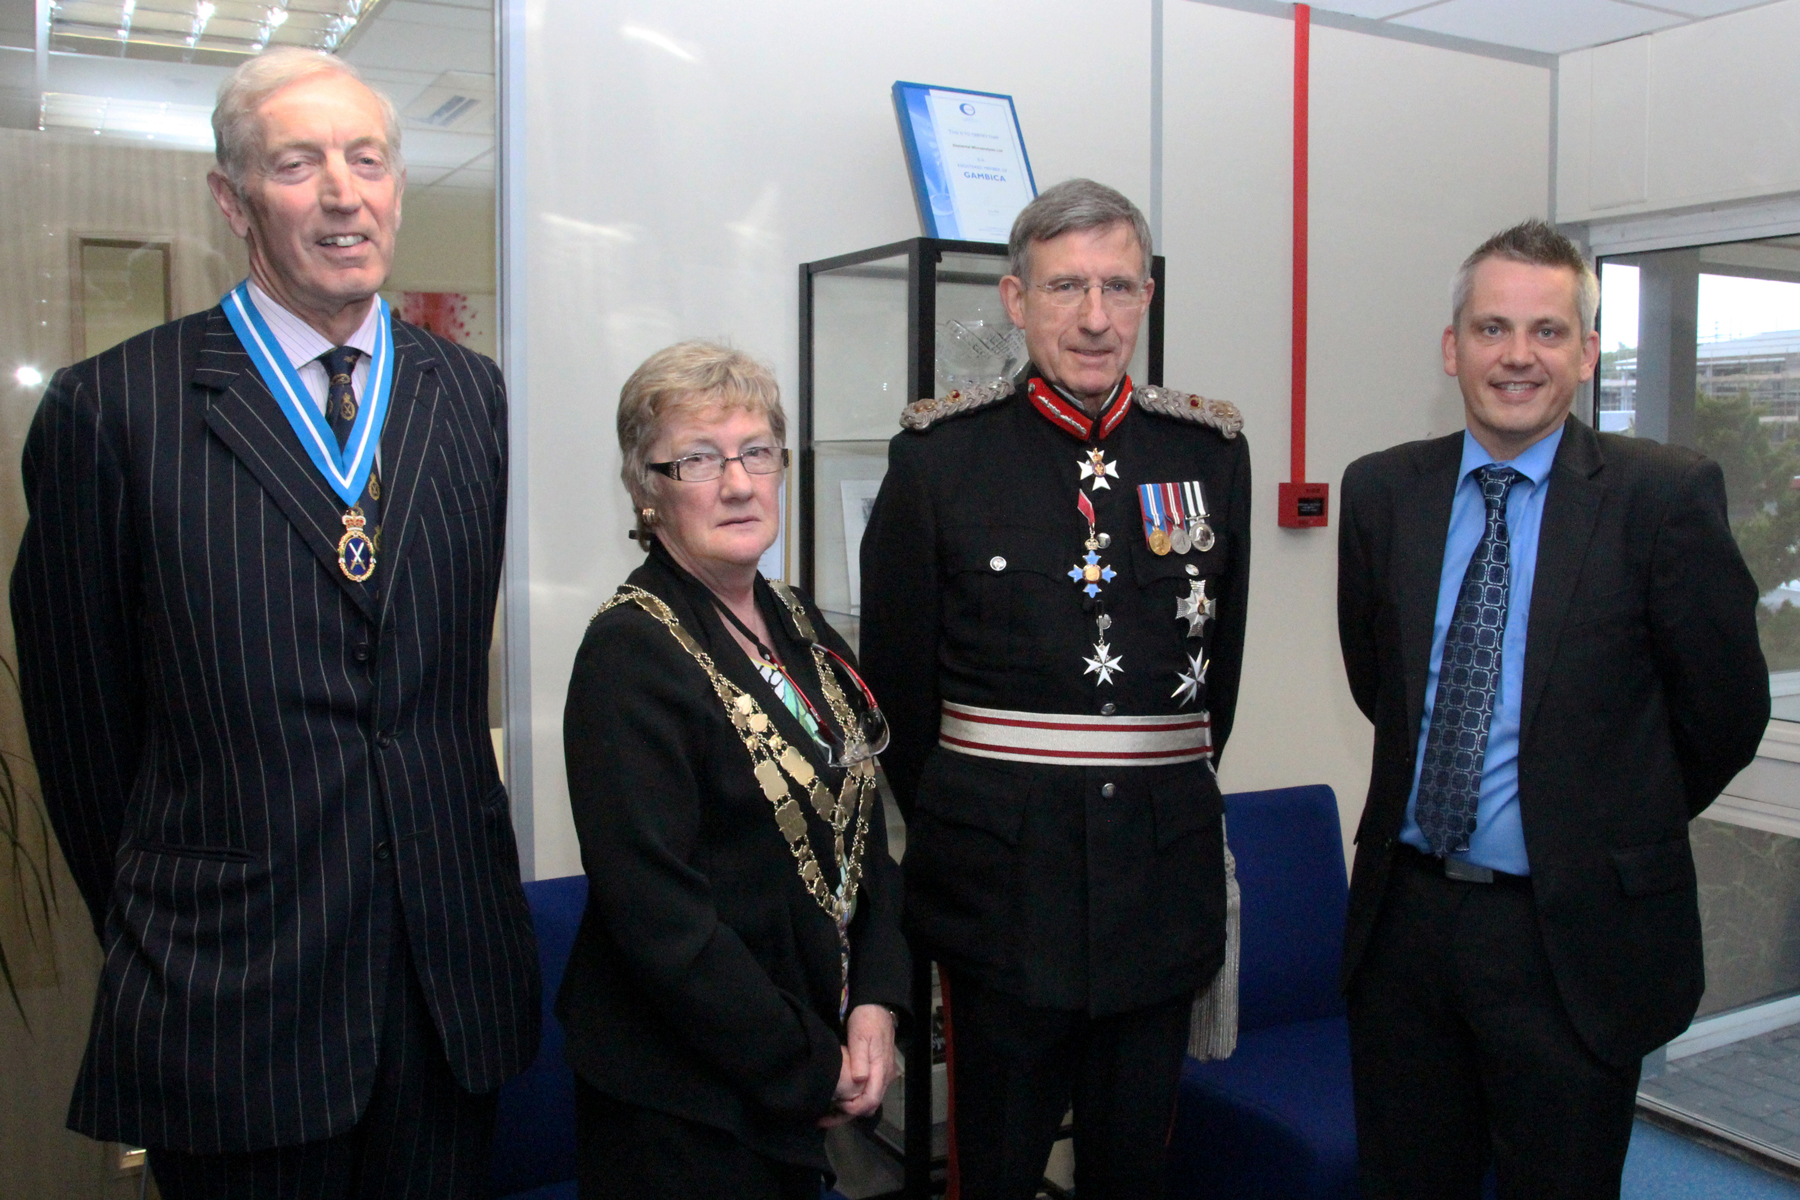 (R-L) Paul Stevens Operations Director meets with the Lord Lieutenant of Devon, Mayor of West Devon and the High Sheriff of Devon